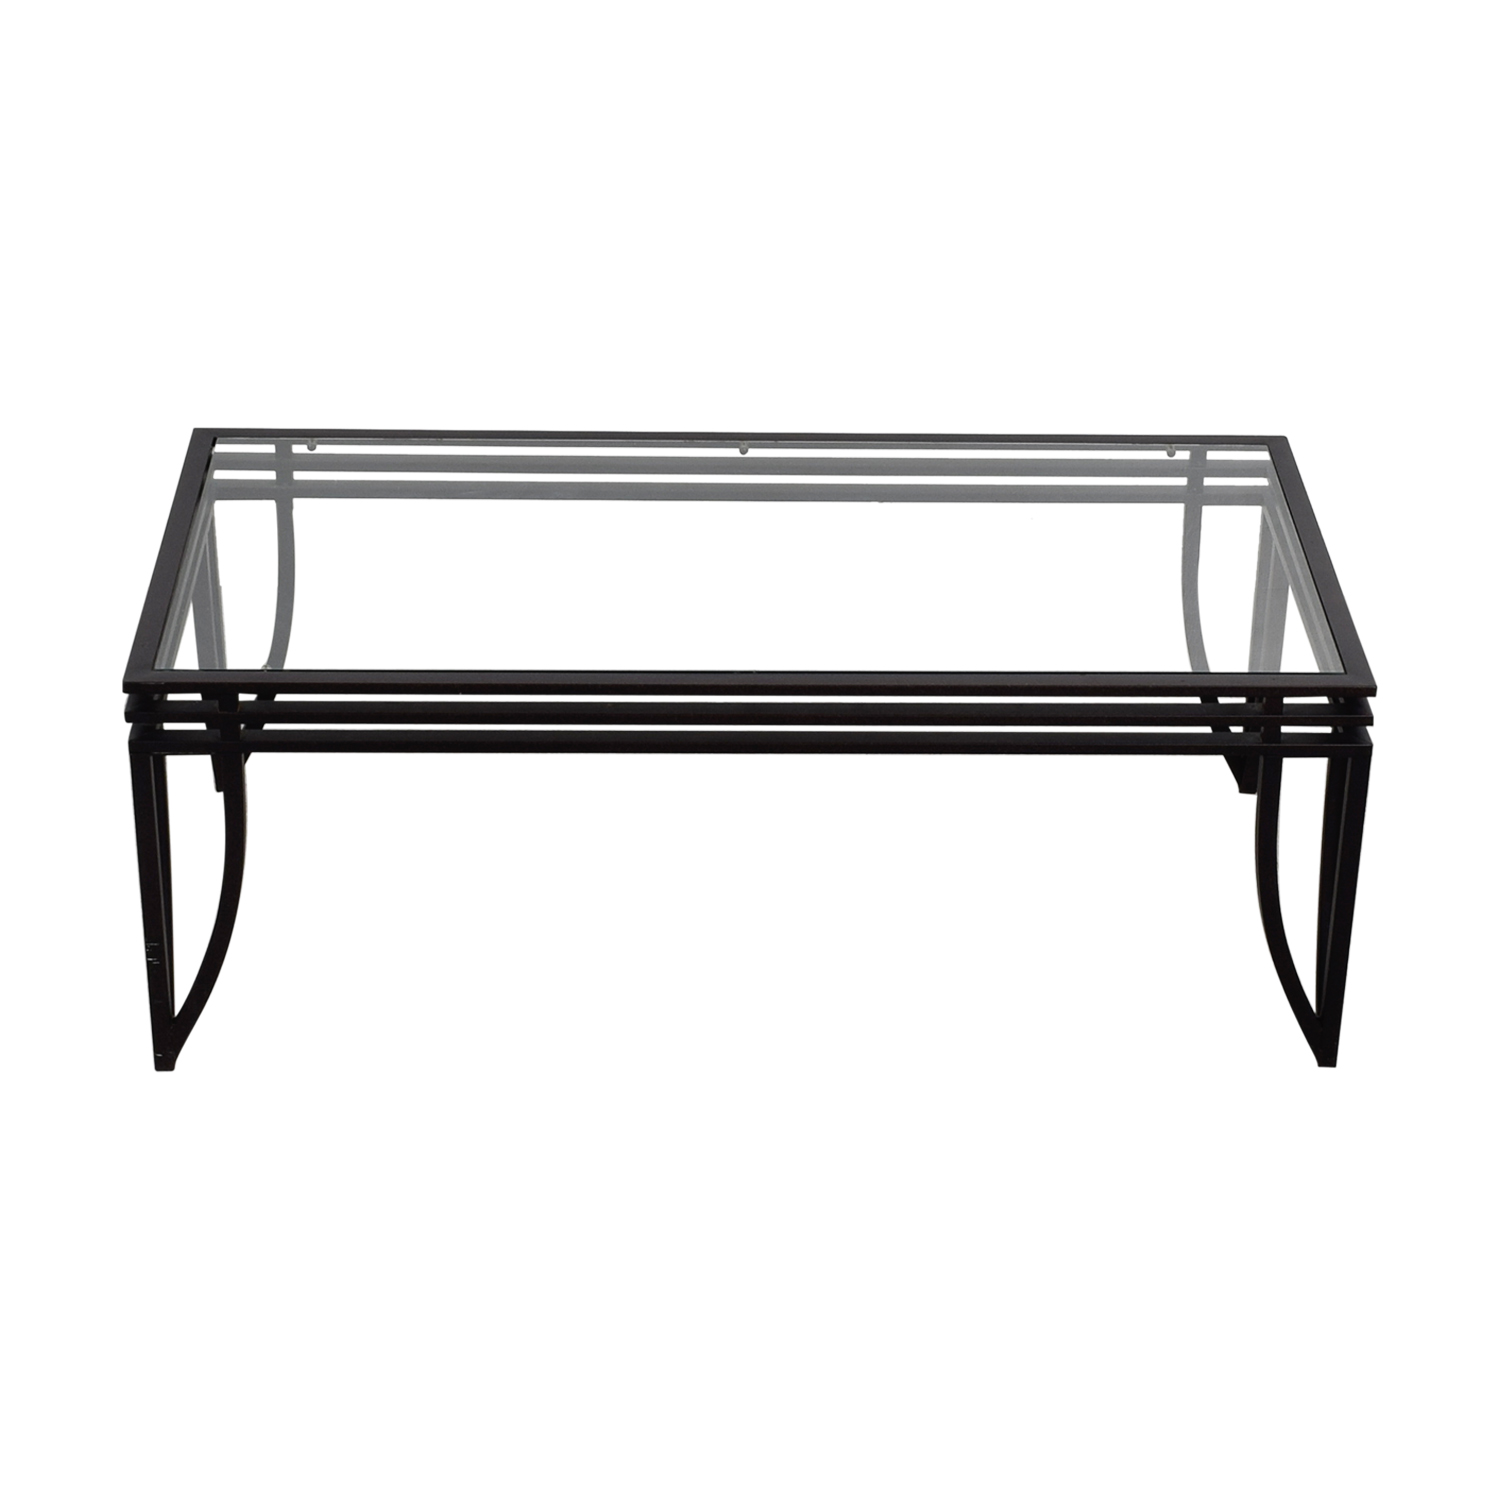 Glass and Metal Coffee Table dimensions